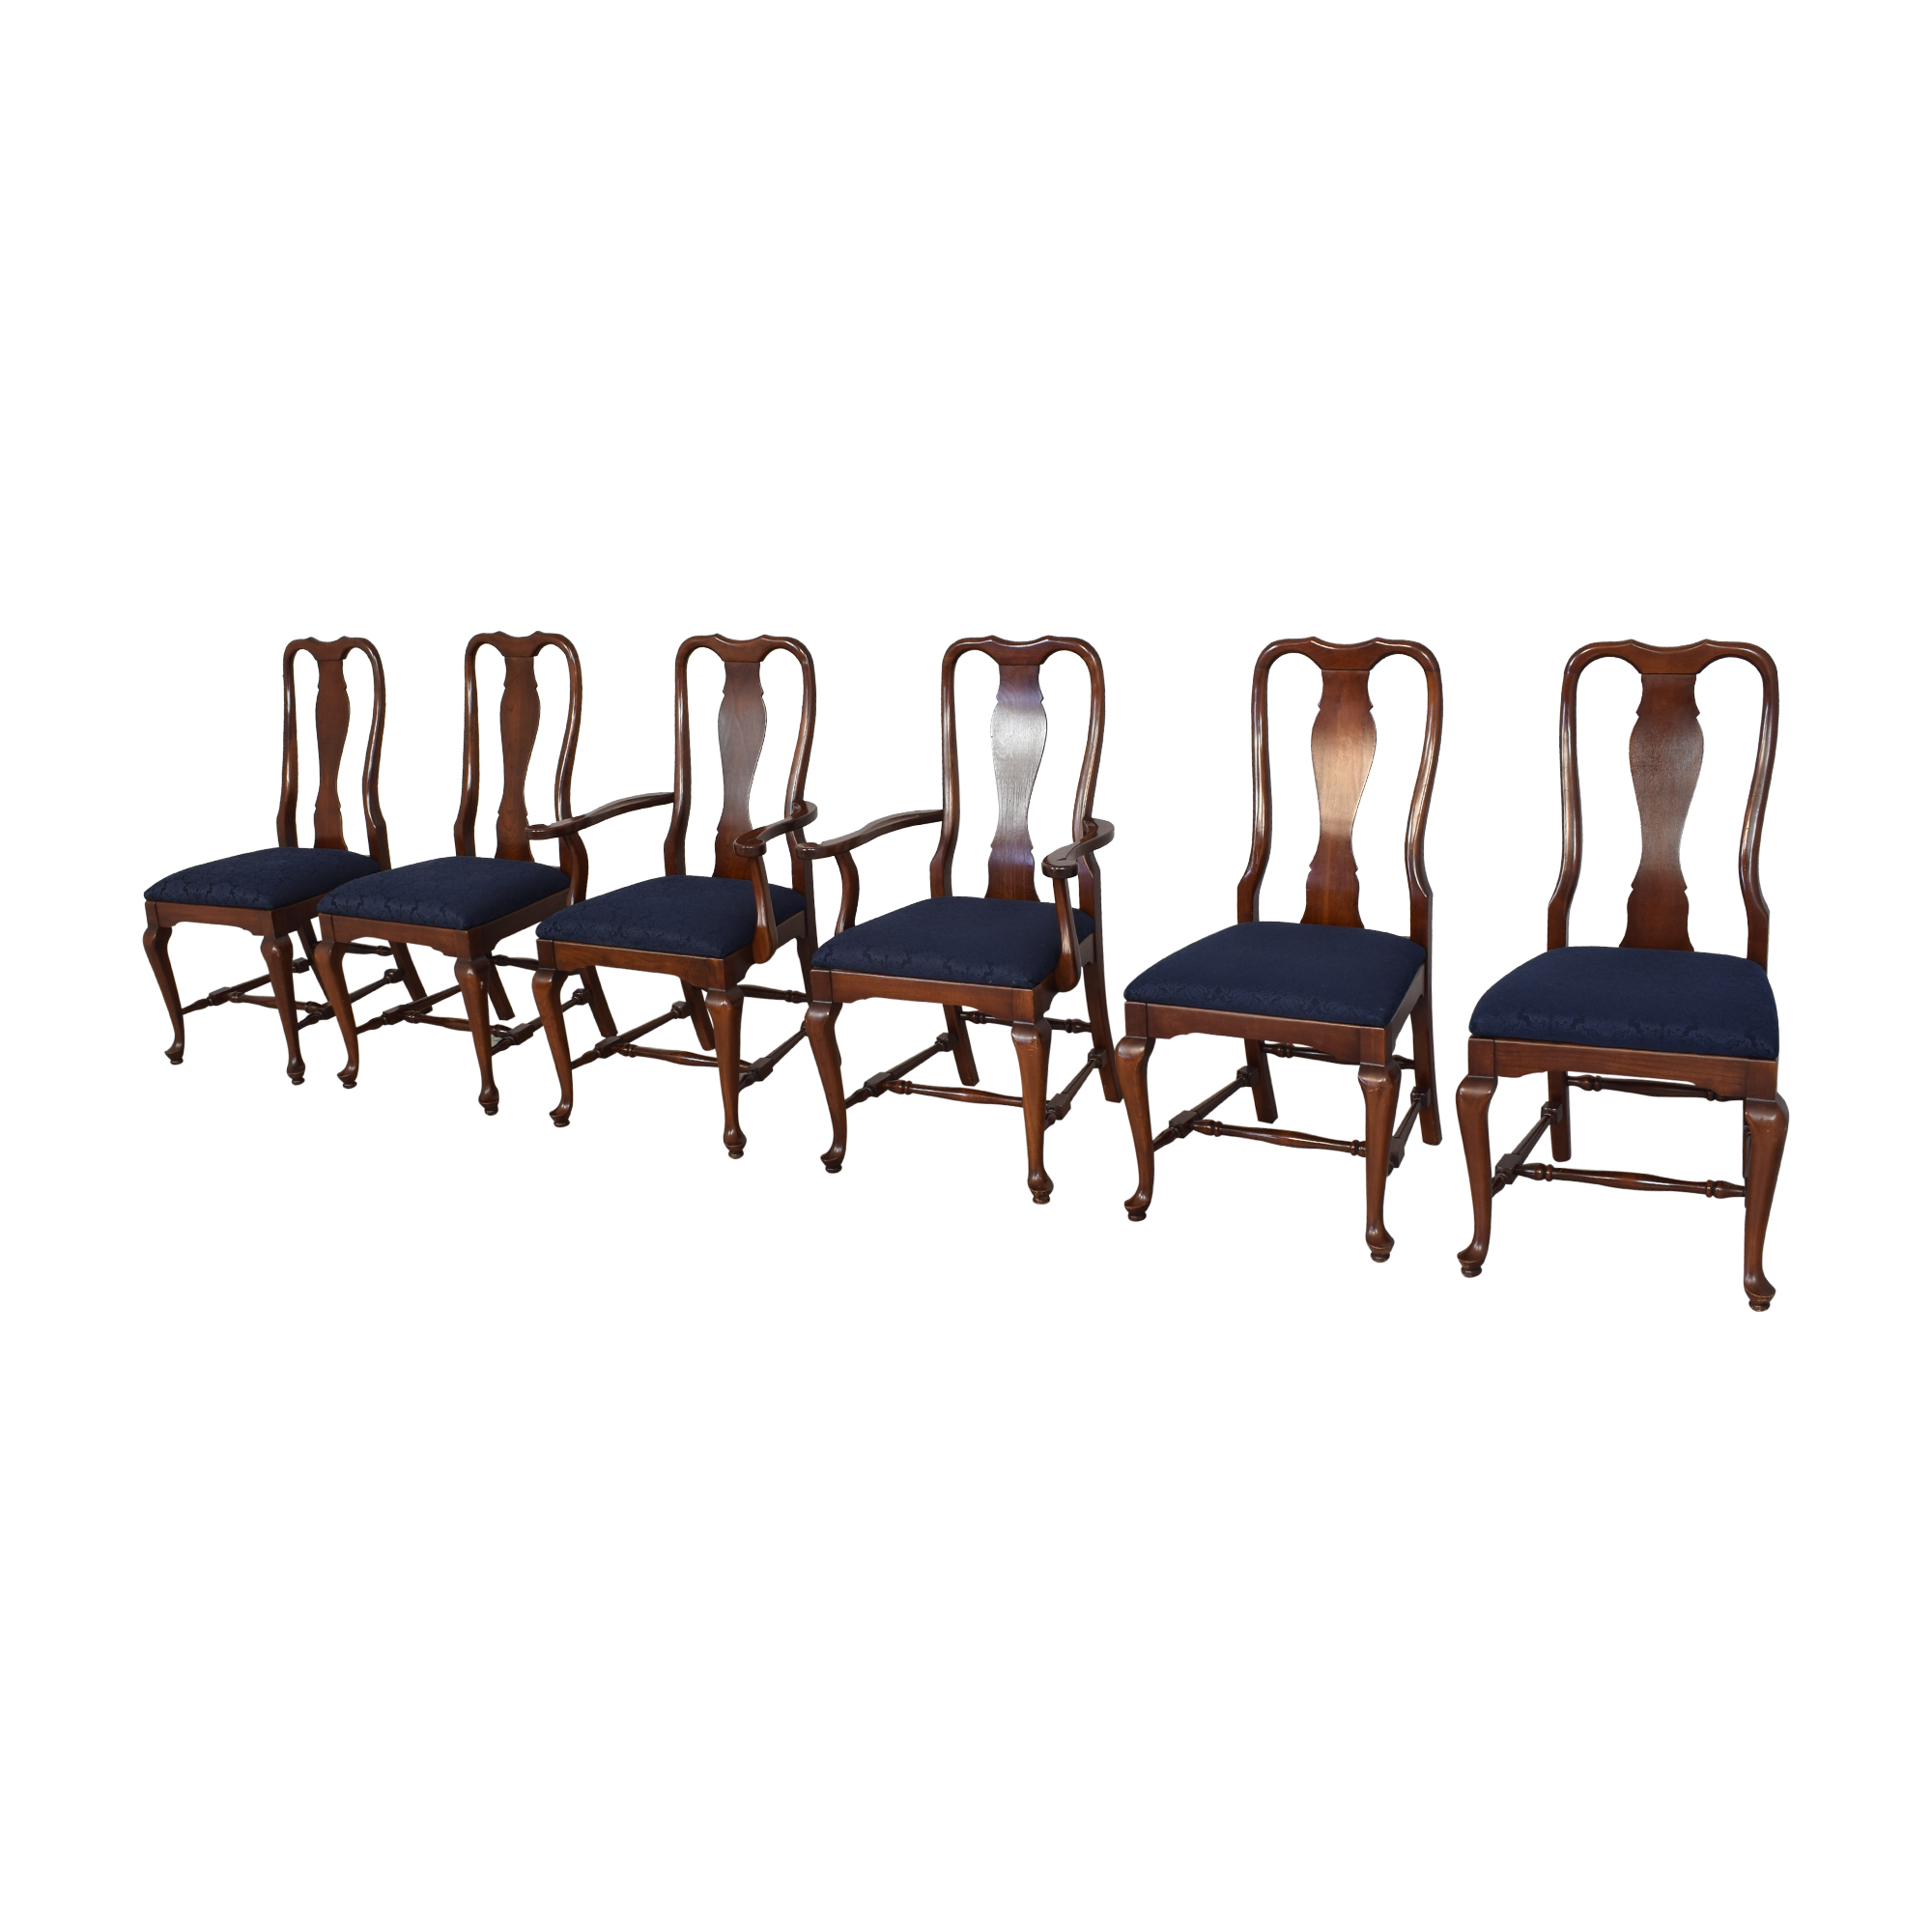 Hitchcock Hitchcock Queen Anne Dining Chairs Dining Chairs